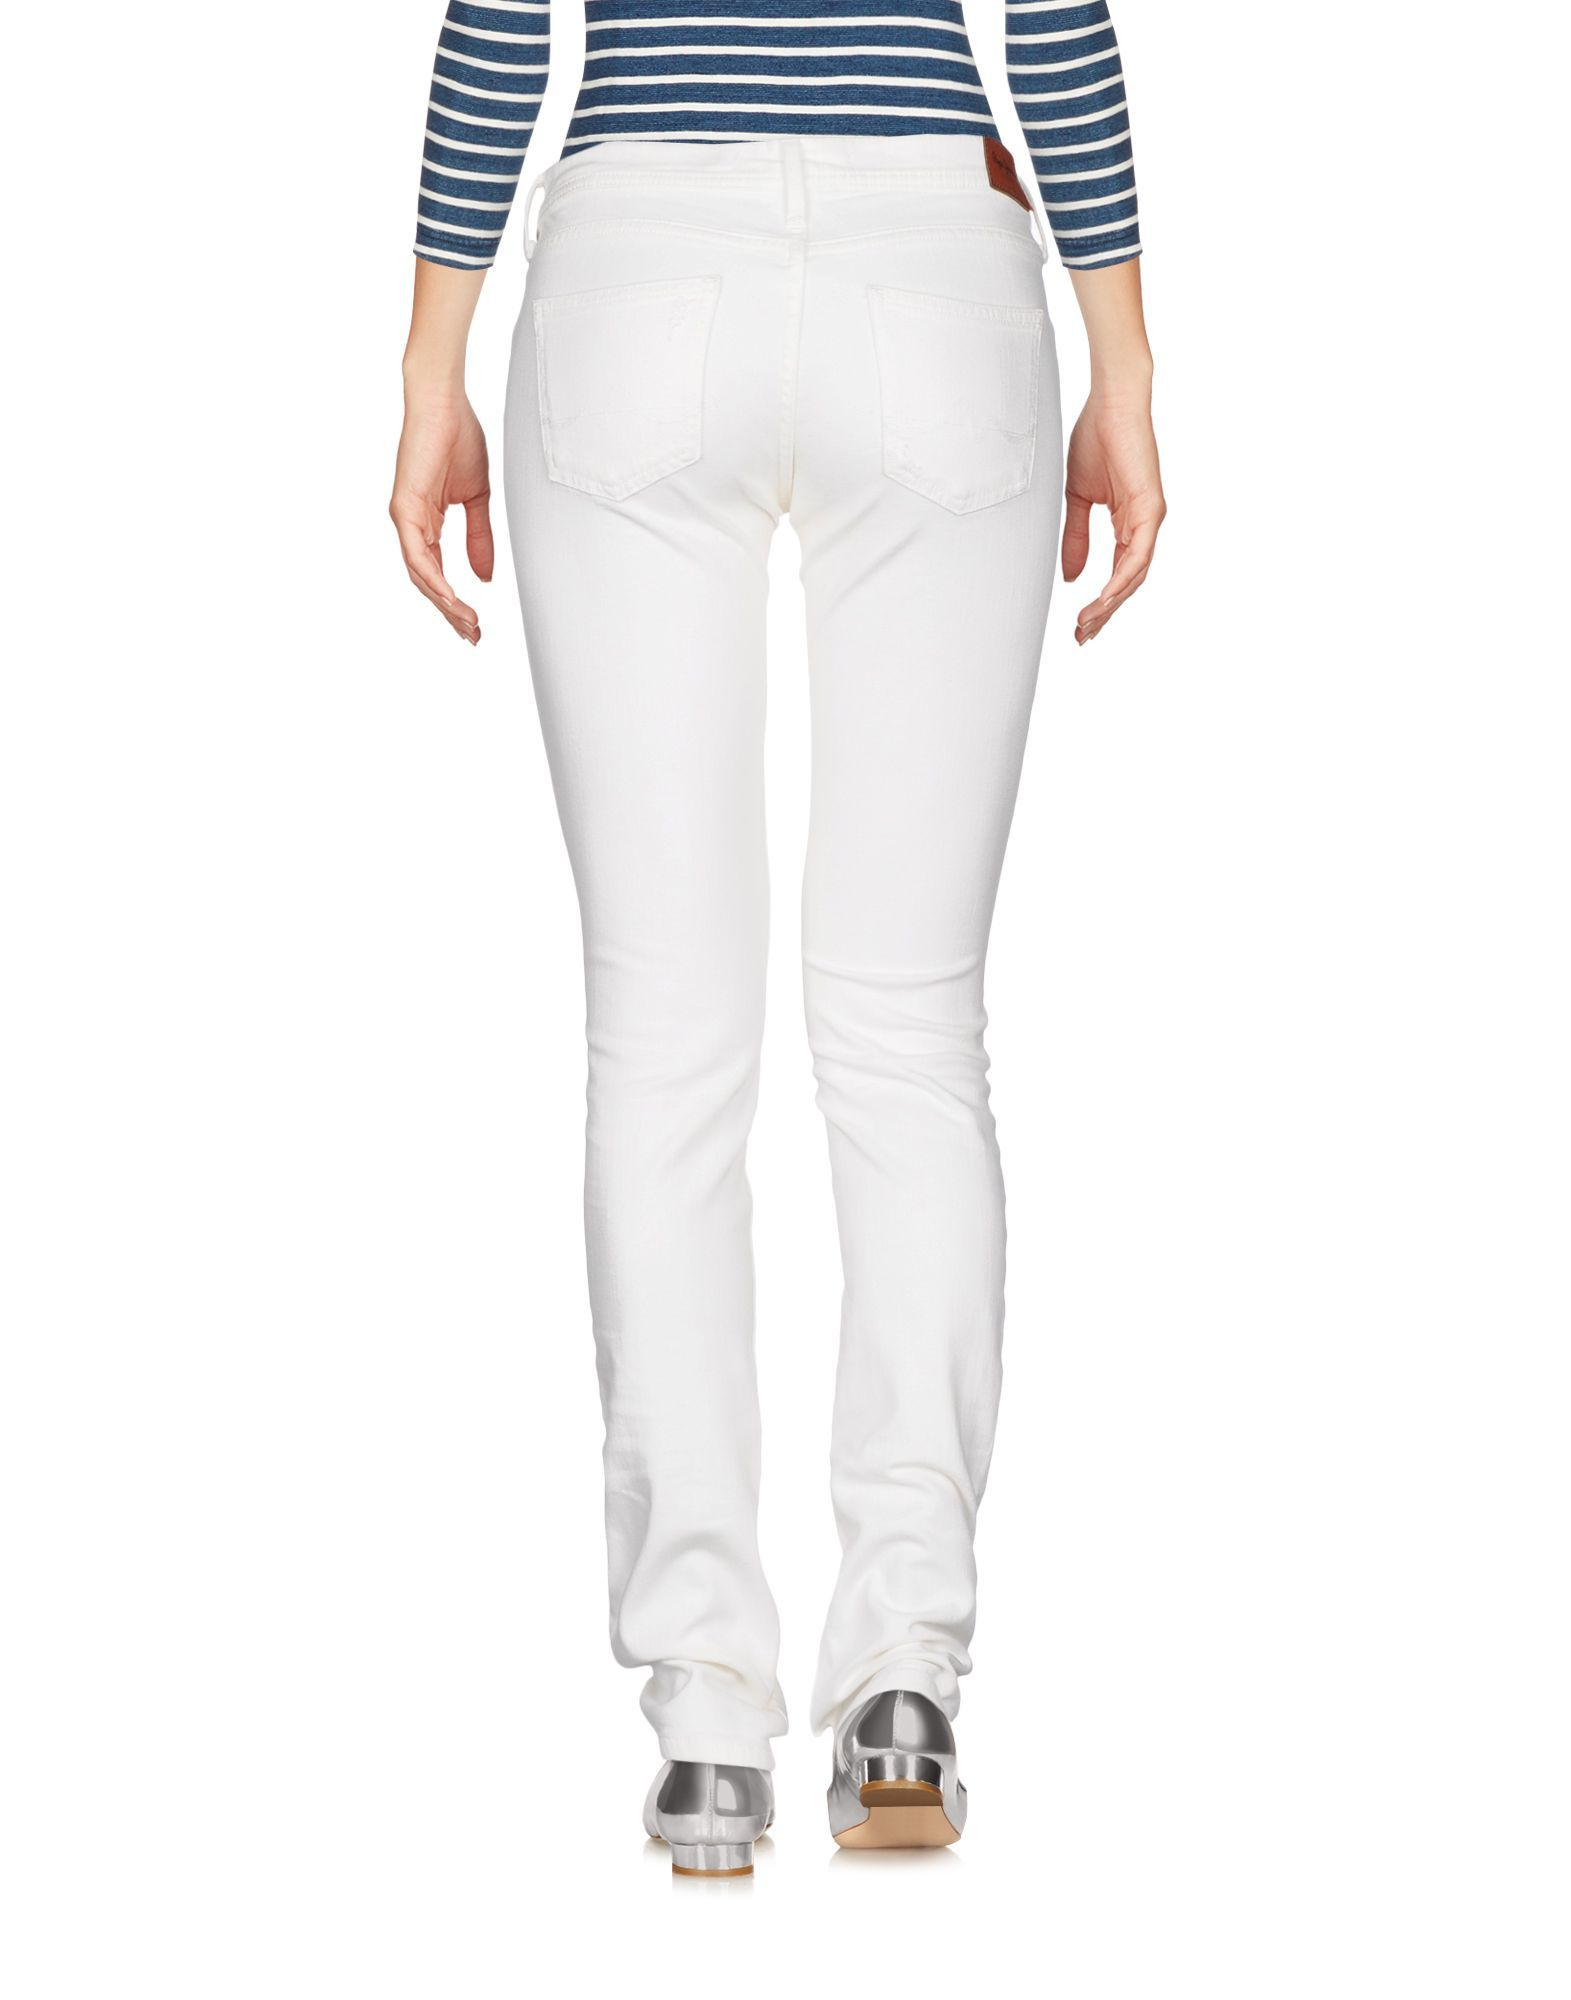 Pepe Jeans White Cotton Skinny Jeans